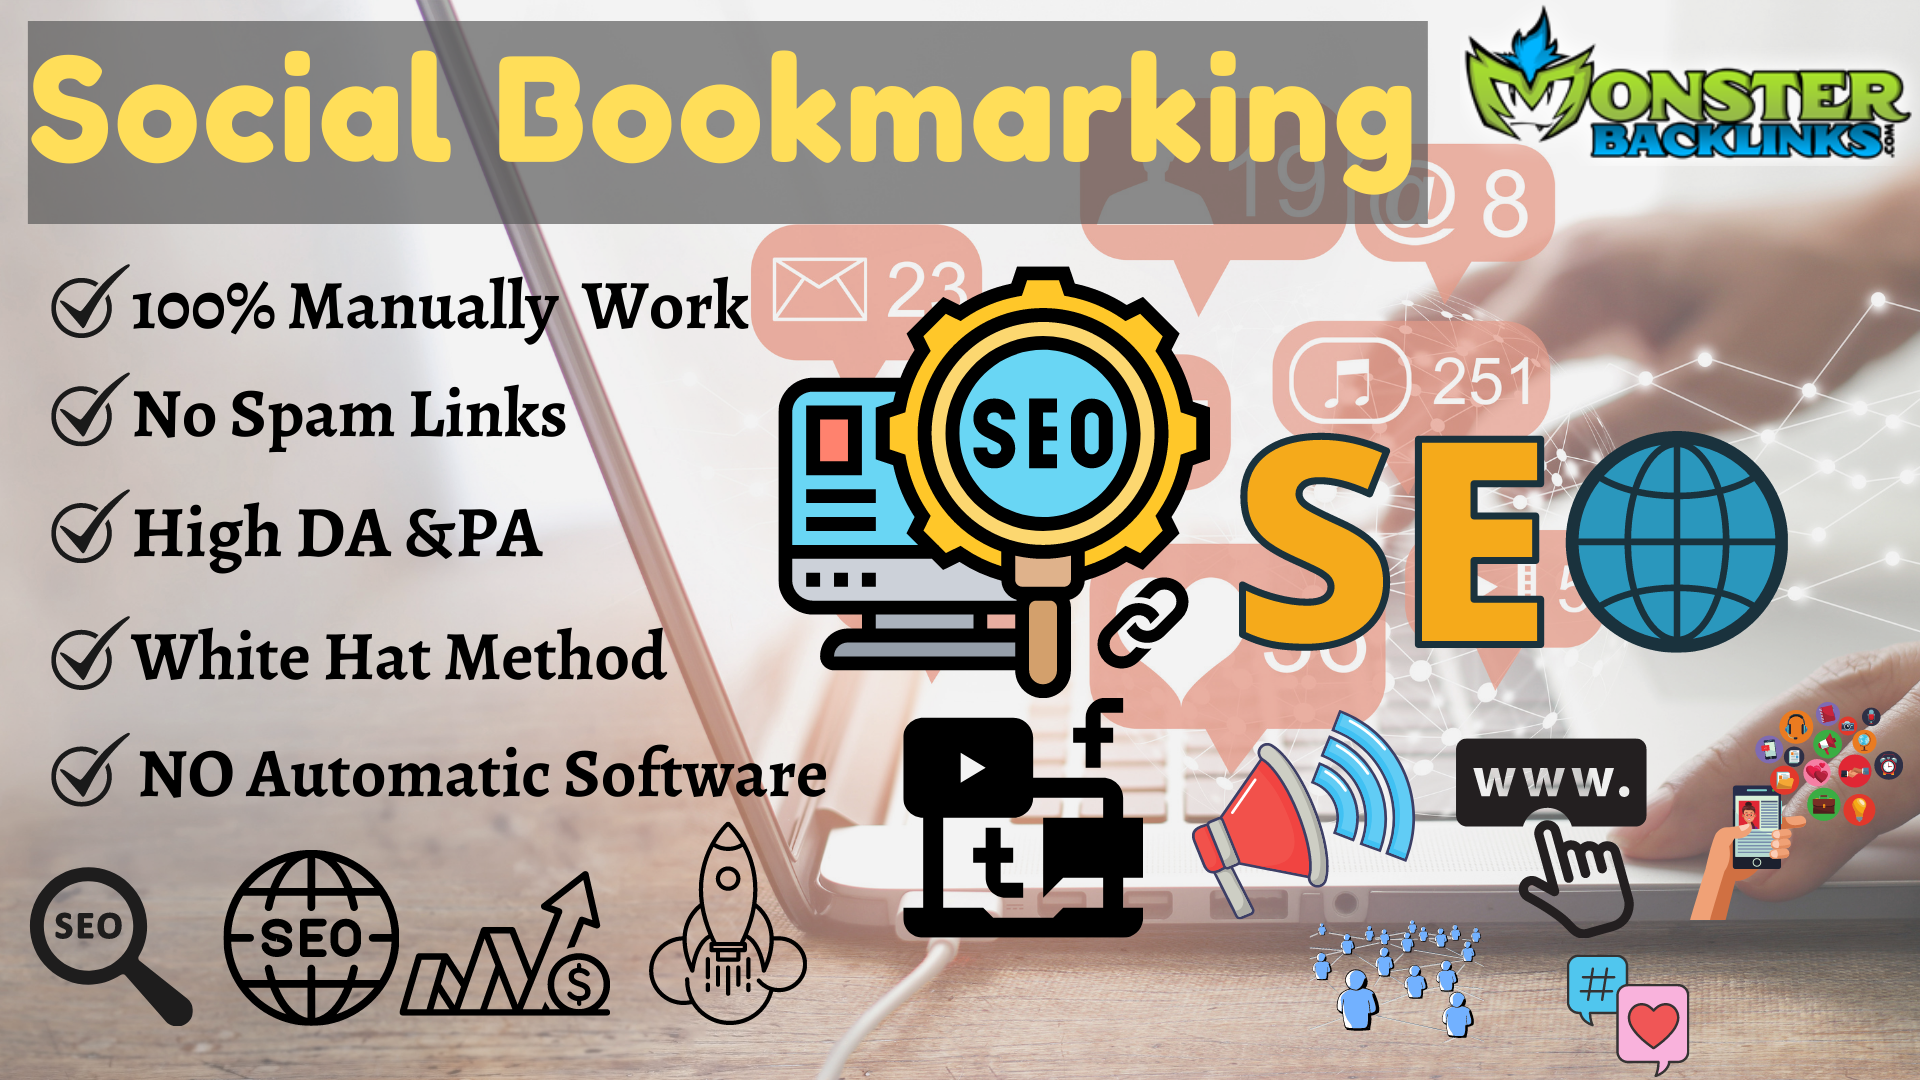 I Will Manually Submit Top 100 High-Quality Social Bookmarking To Rank Your Website.